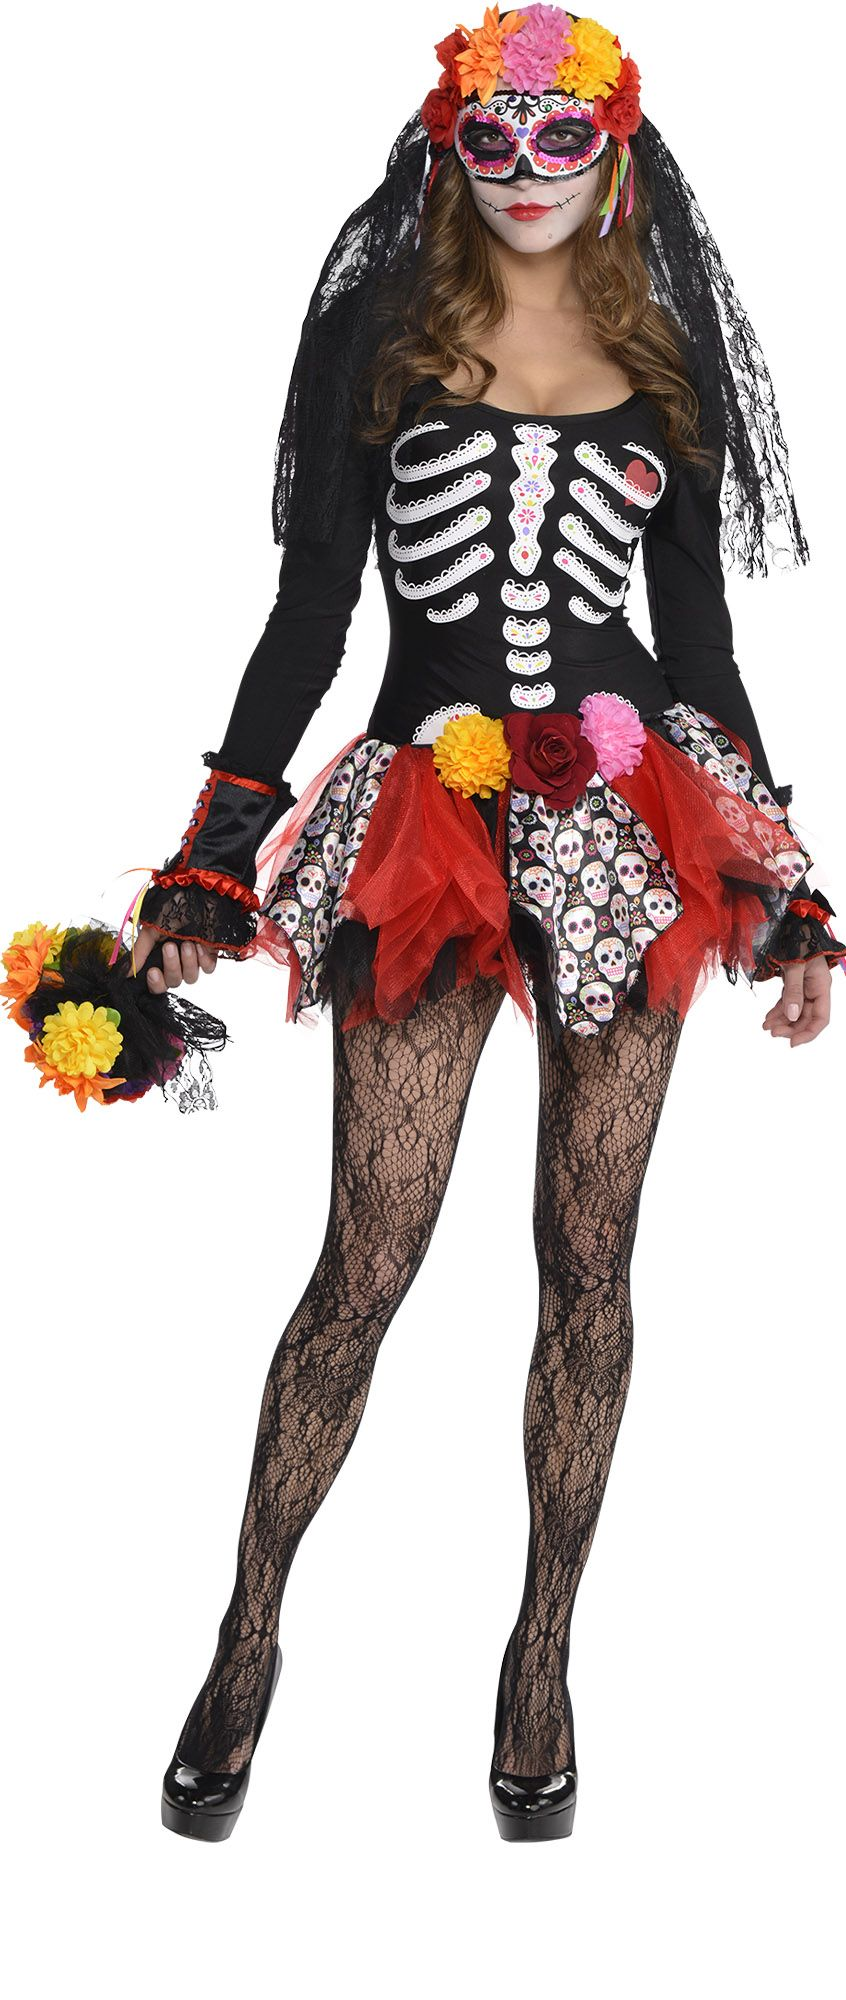 Create Your Own Look - Women's Day of the Dead